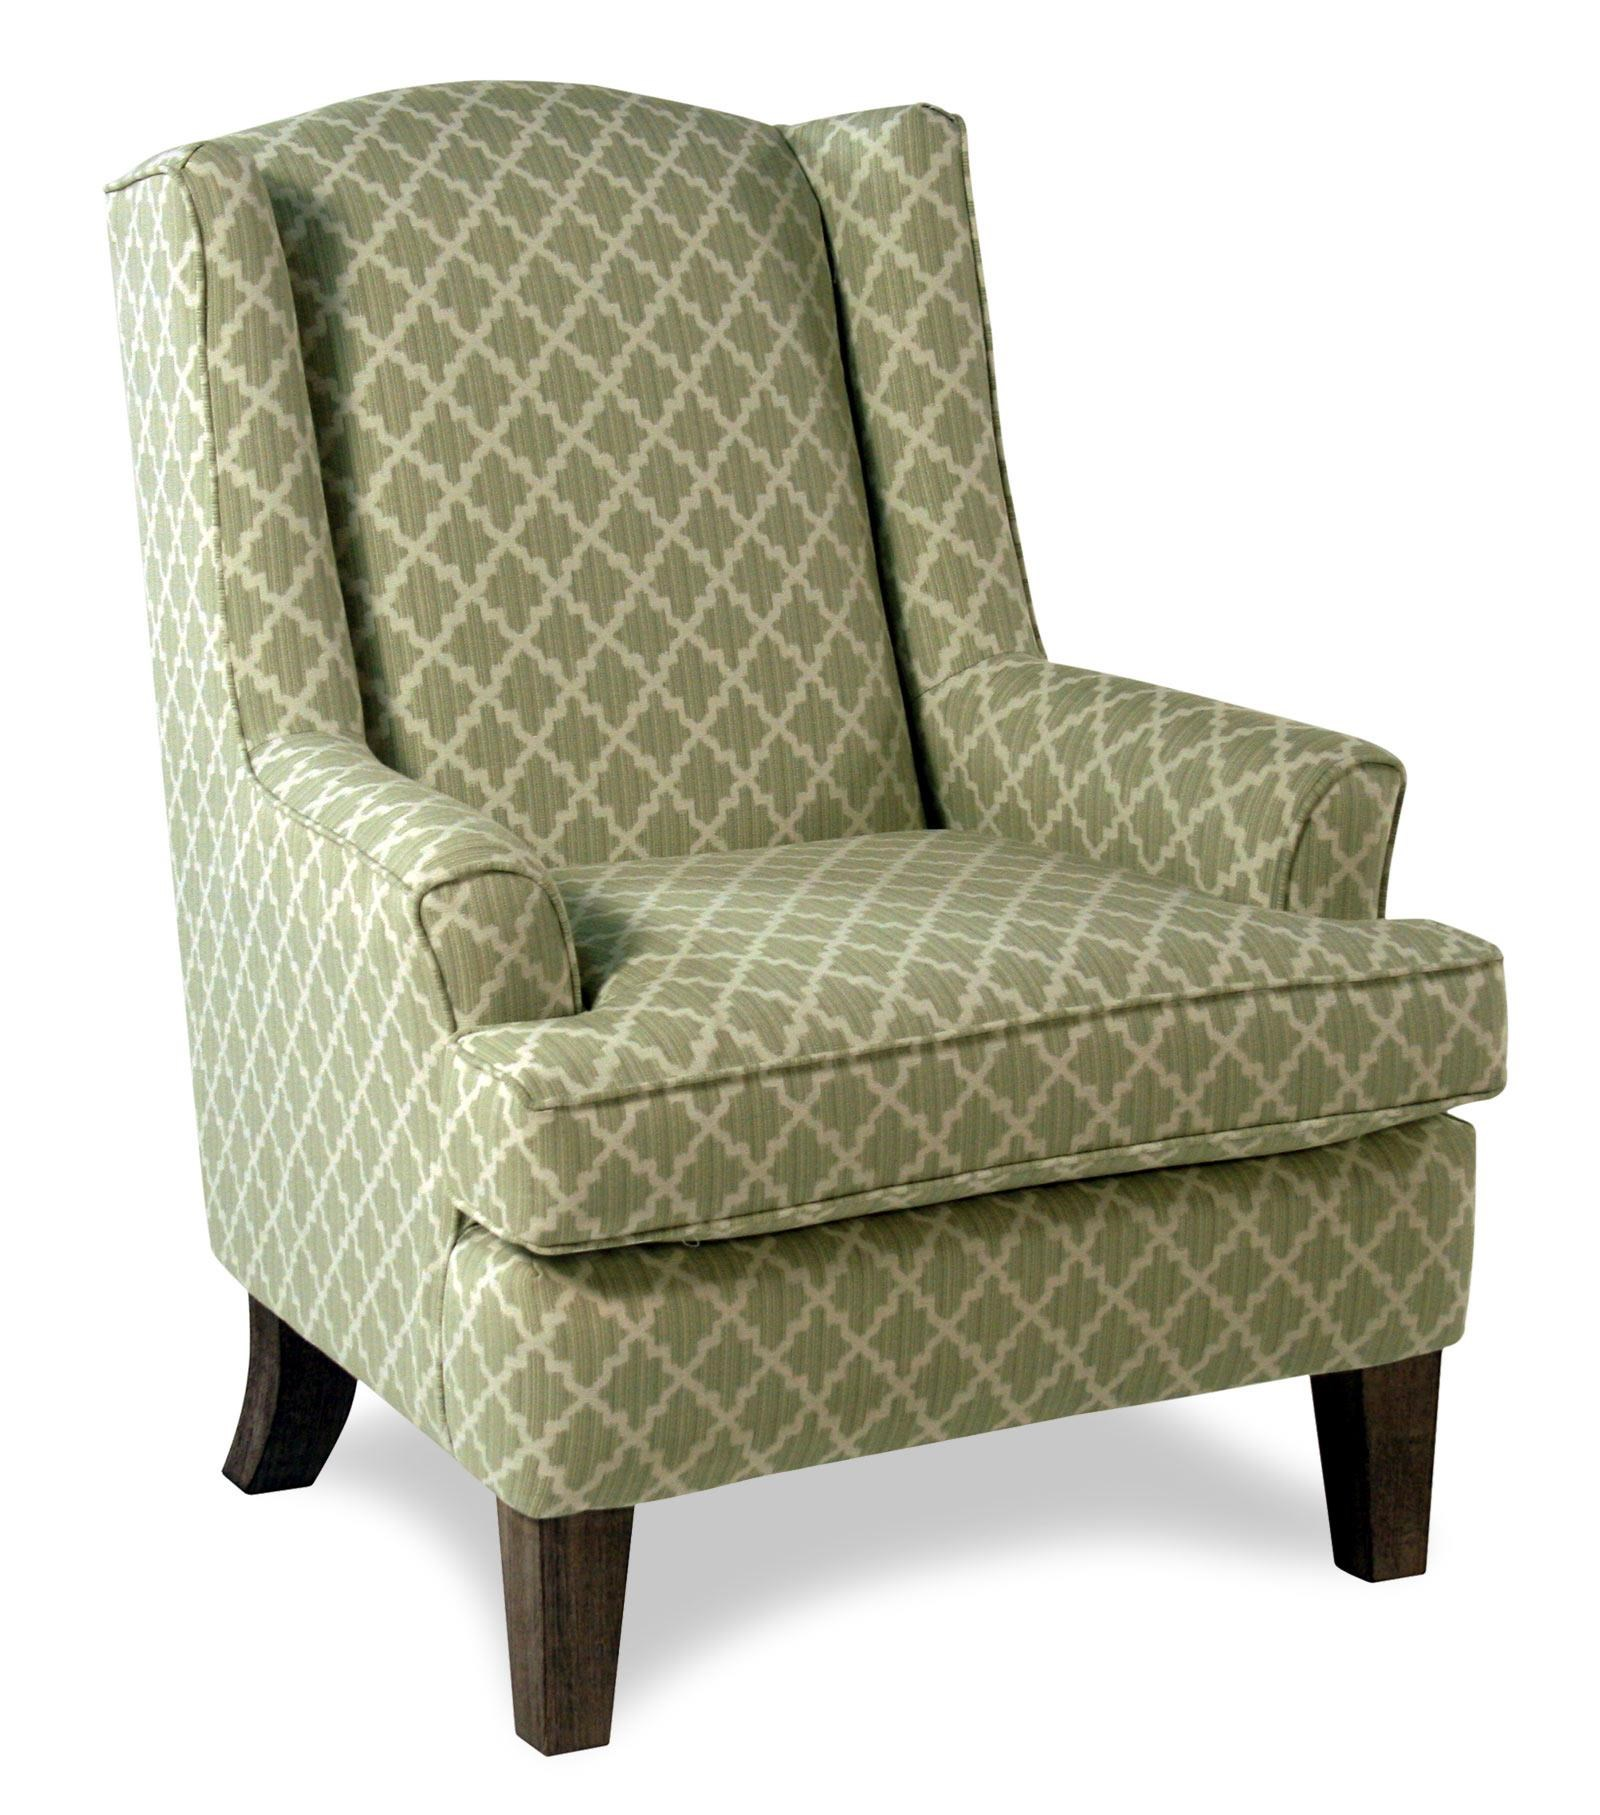 Best Home Furnishings Wing Chairs Contemporary Wing Chair | Rotmans ...